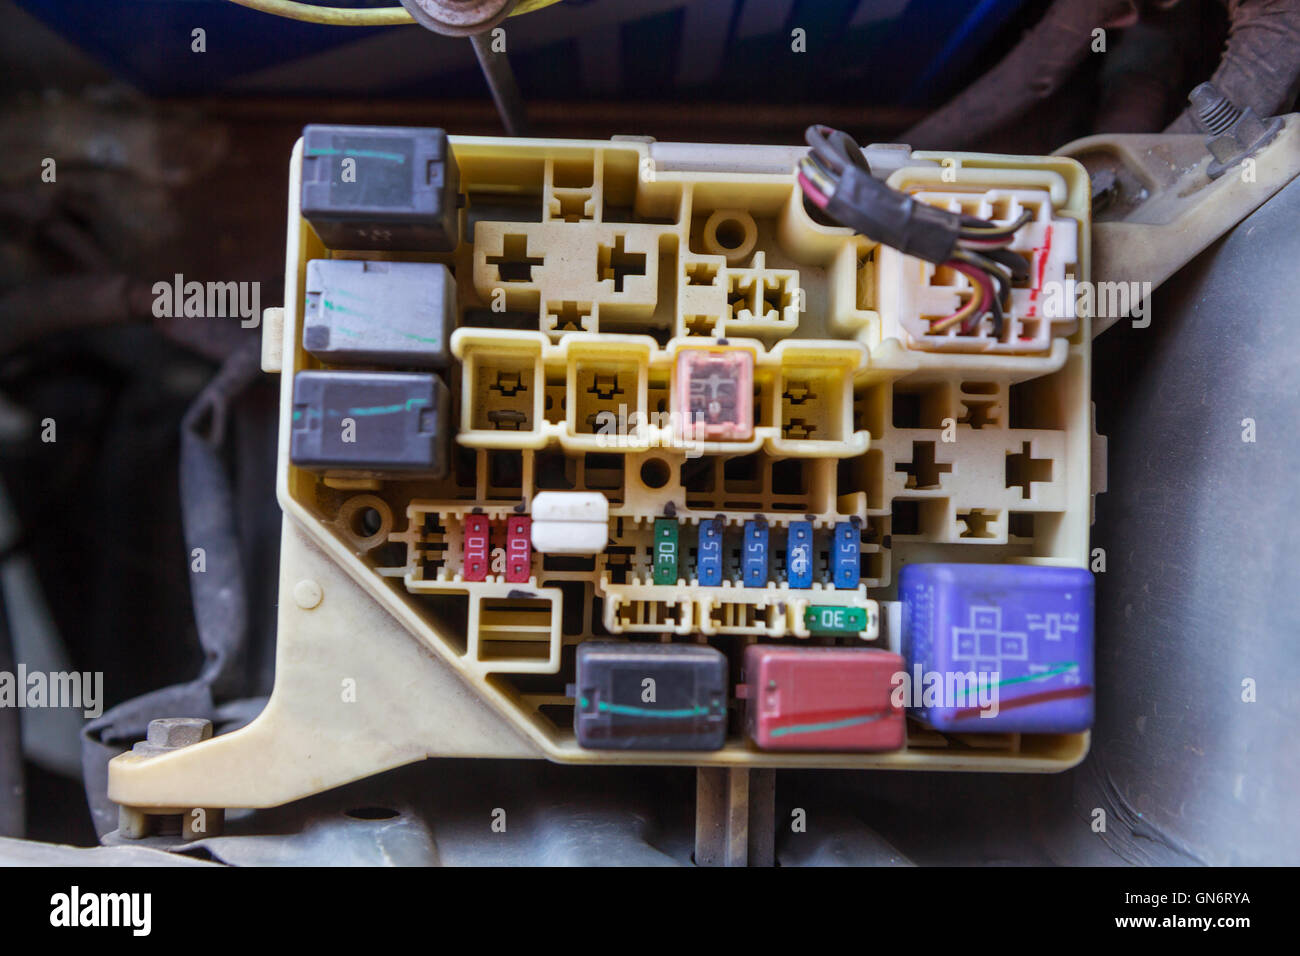 Old Car Fuse Box Simple Wiring Diagram Problems The Man Opening Of Stock Photo 116320494 Alamy